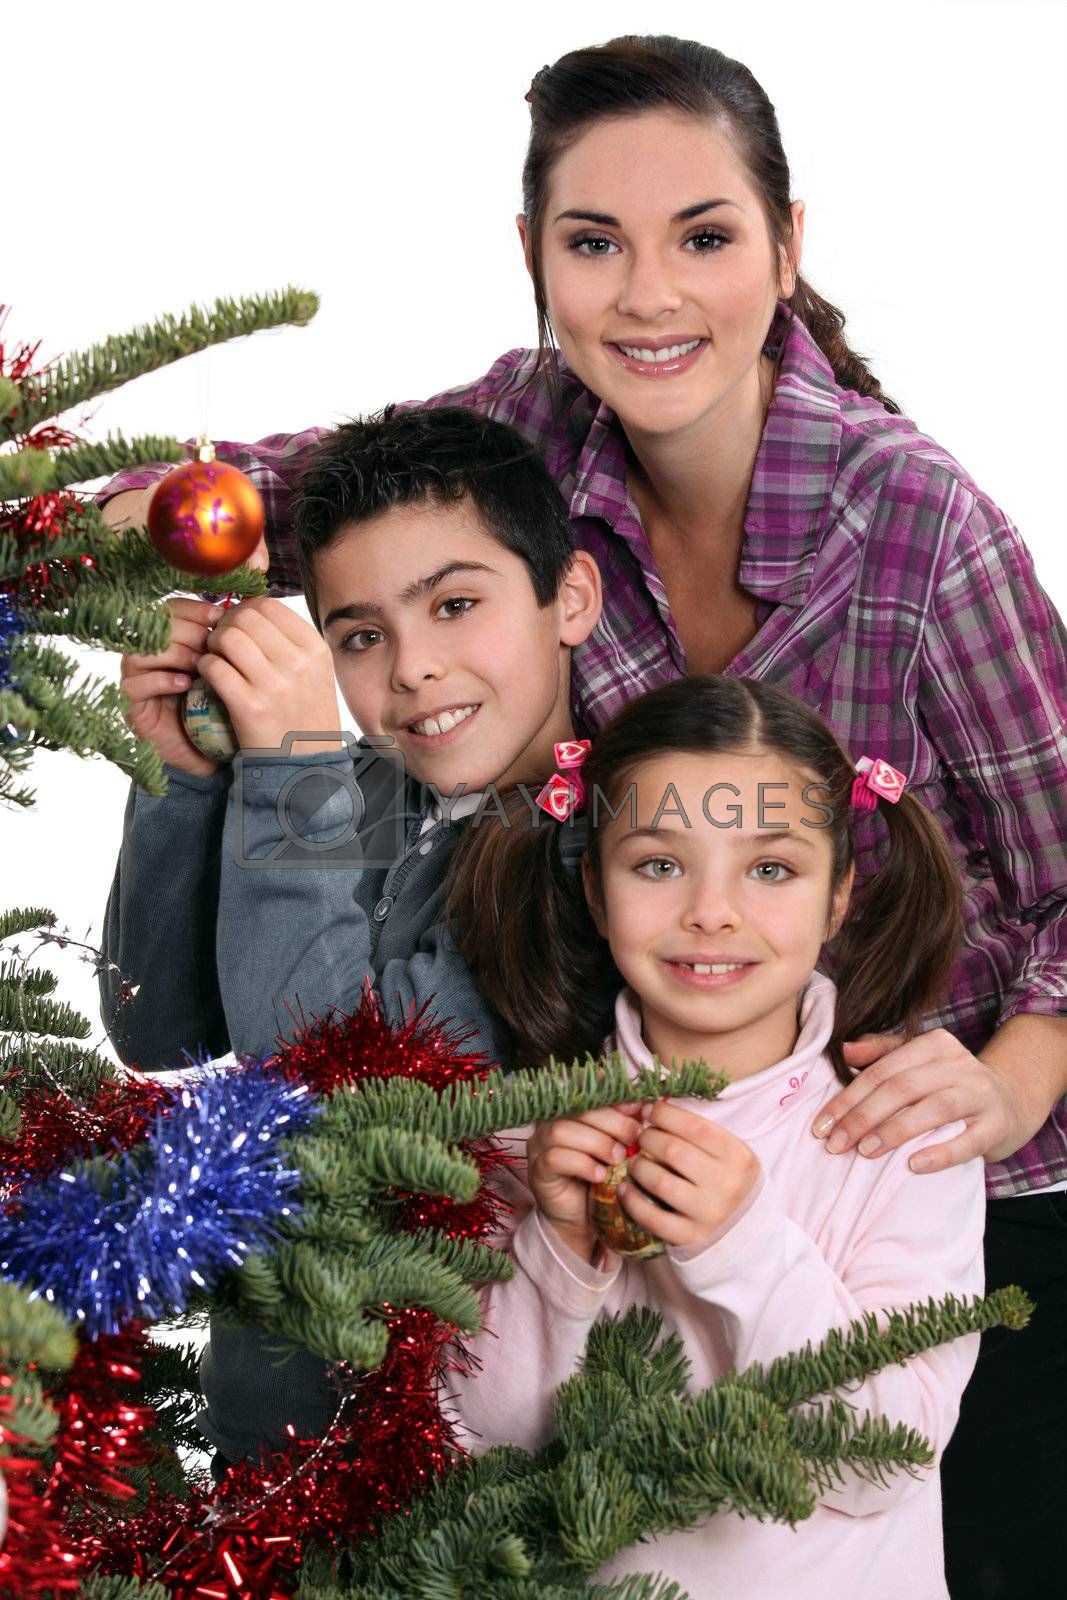 Family celebrating Christmas together by phovoir